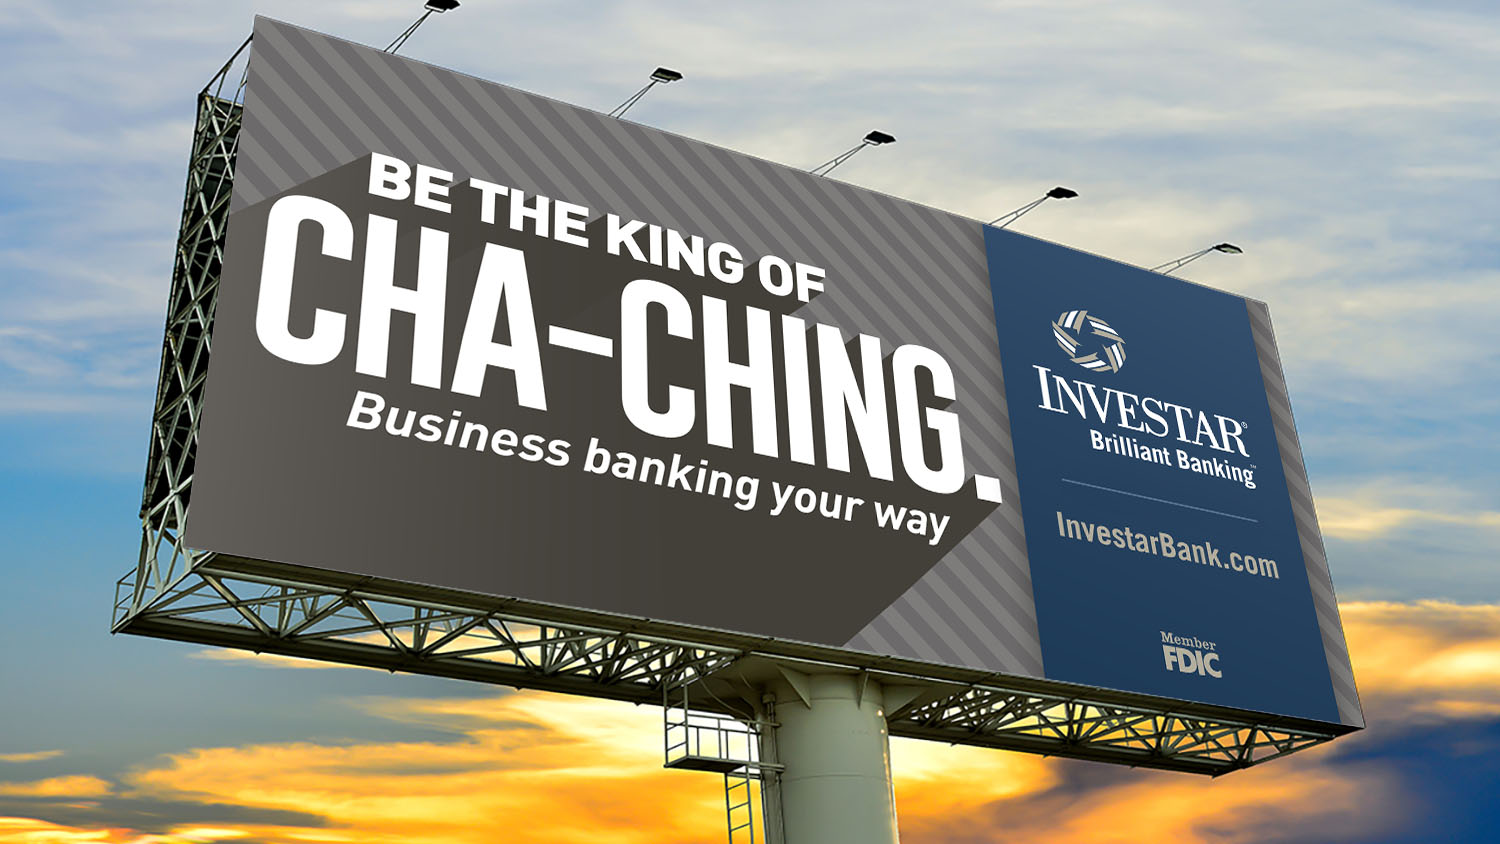 Investar Bank | King of Cha-Ching